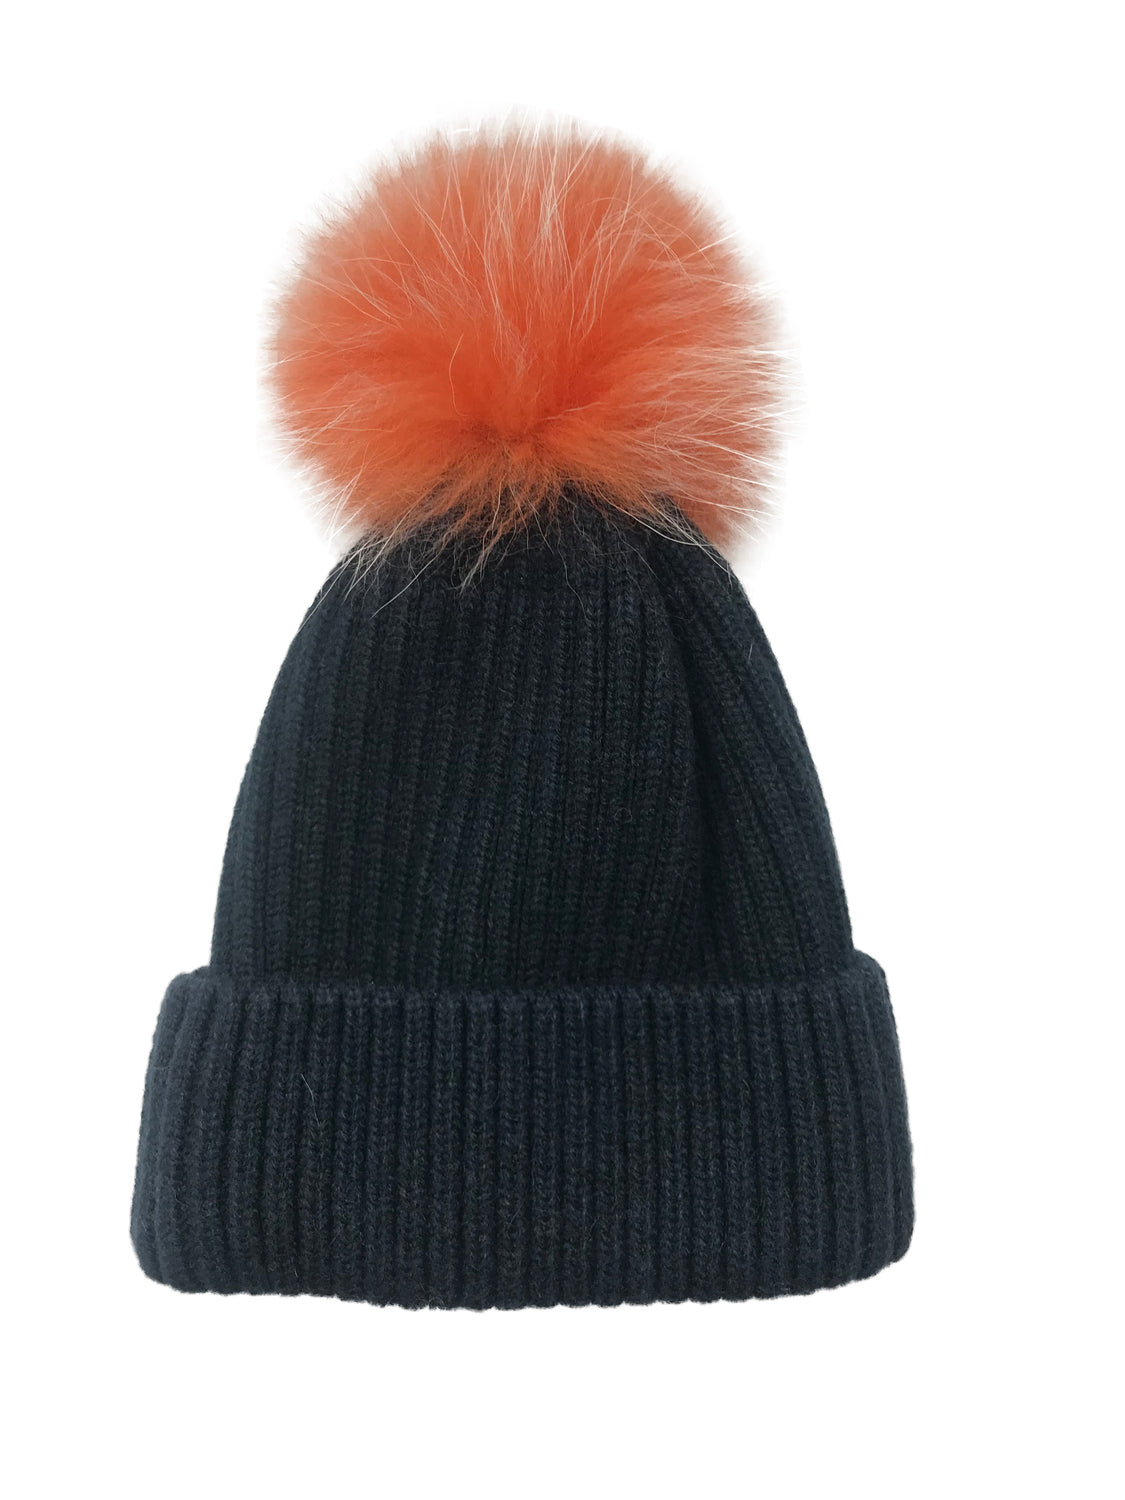 College Theme Pom Pom Hat Navy/Orange